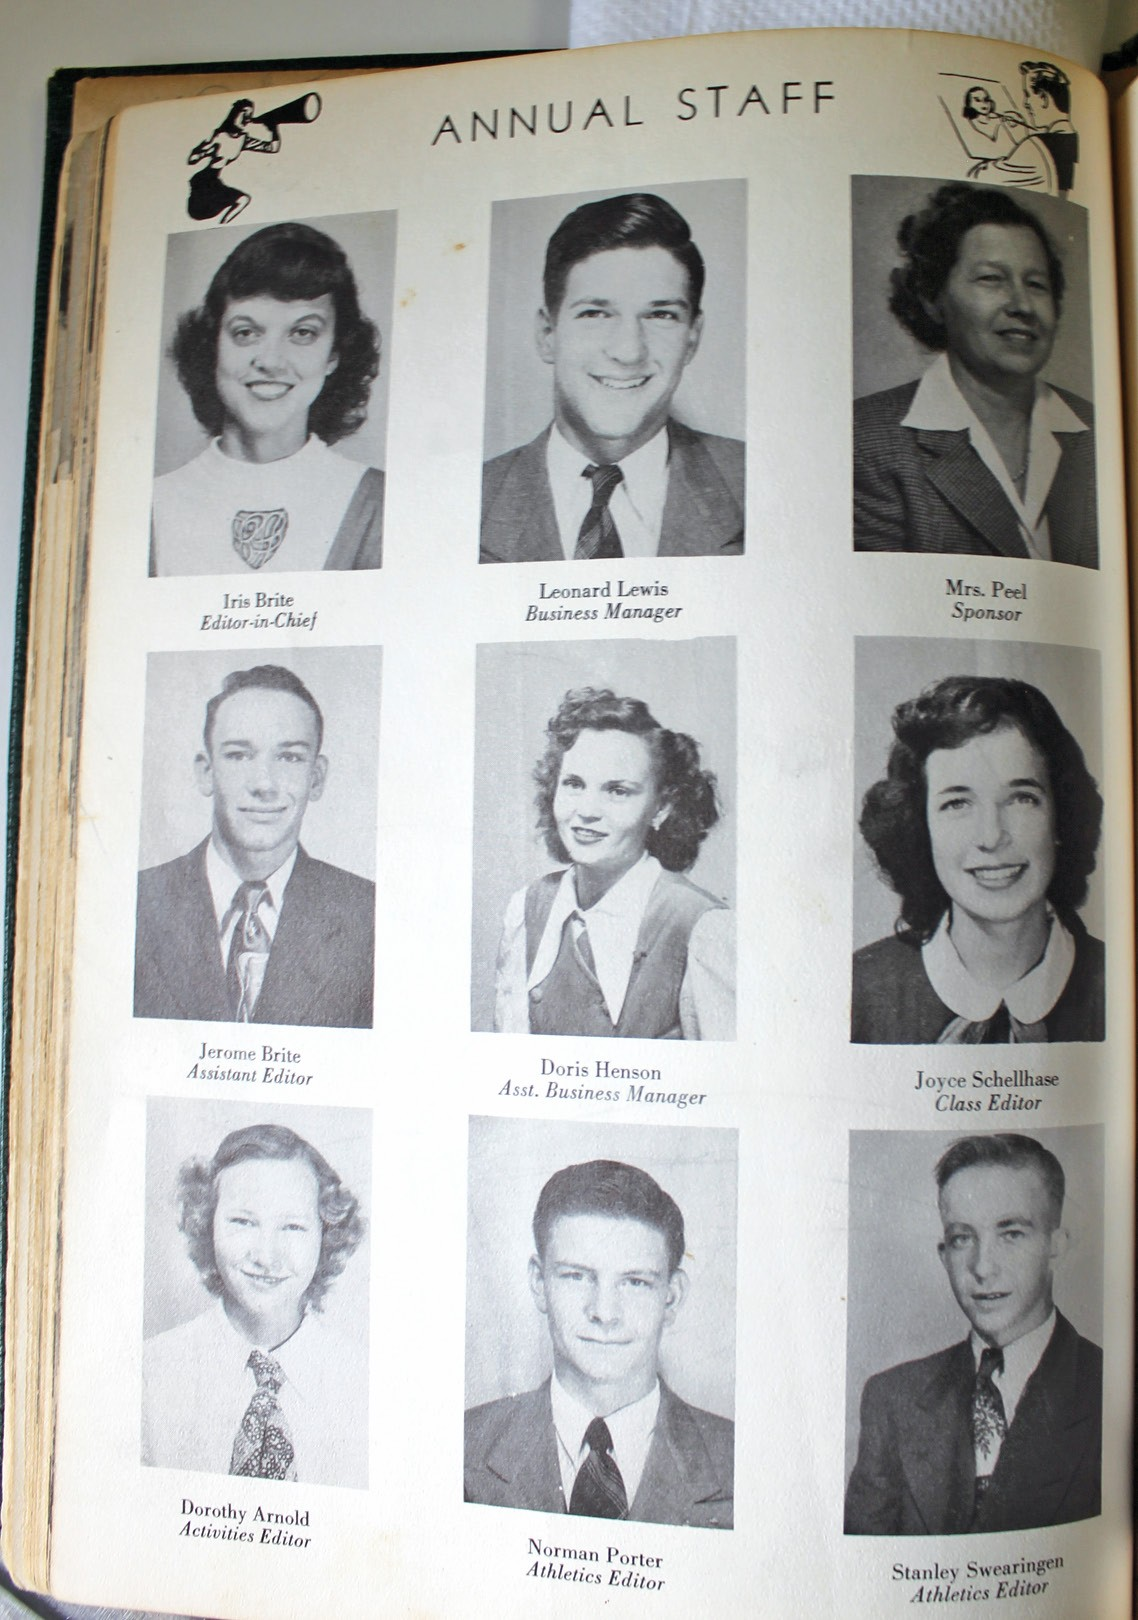 A page from 1950 Pleasanton School annual with picture at top left of Iris Brite (eventually Porter - Norman's wife) -Annual Staff Editor in Chief and at bottom center, Norman Porter, Athletics Editor.